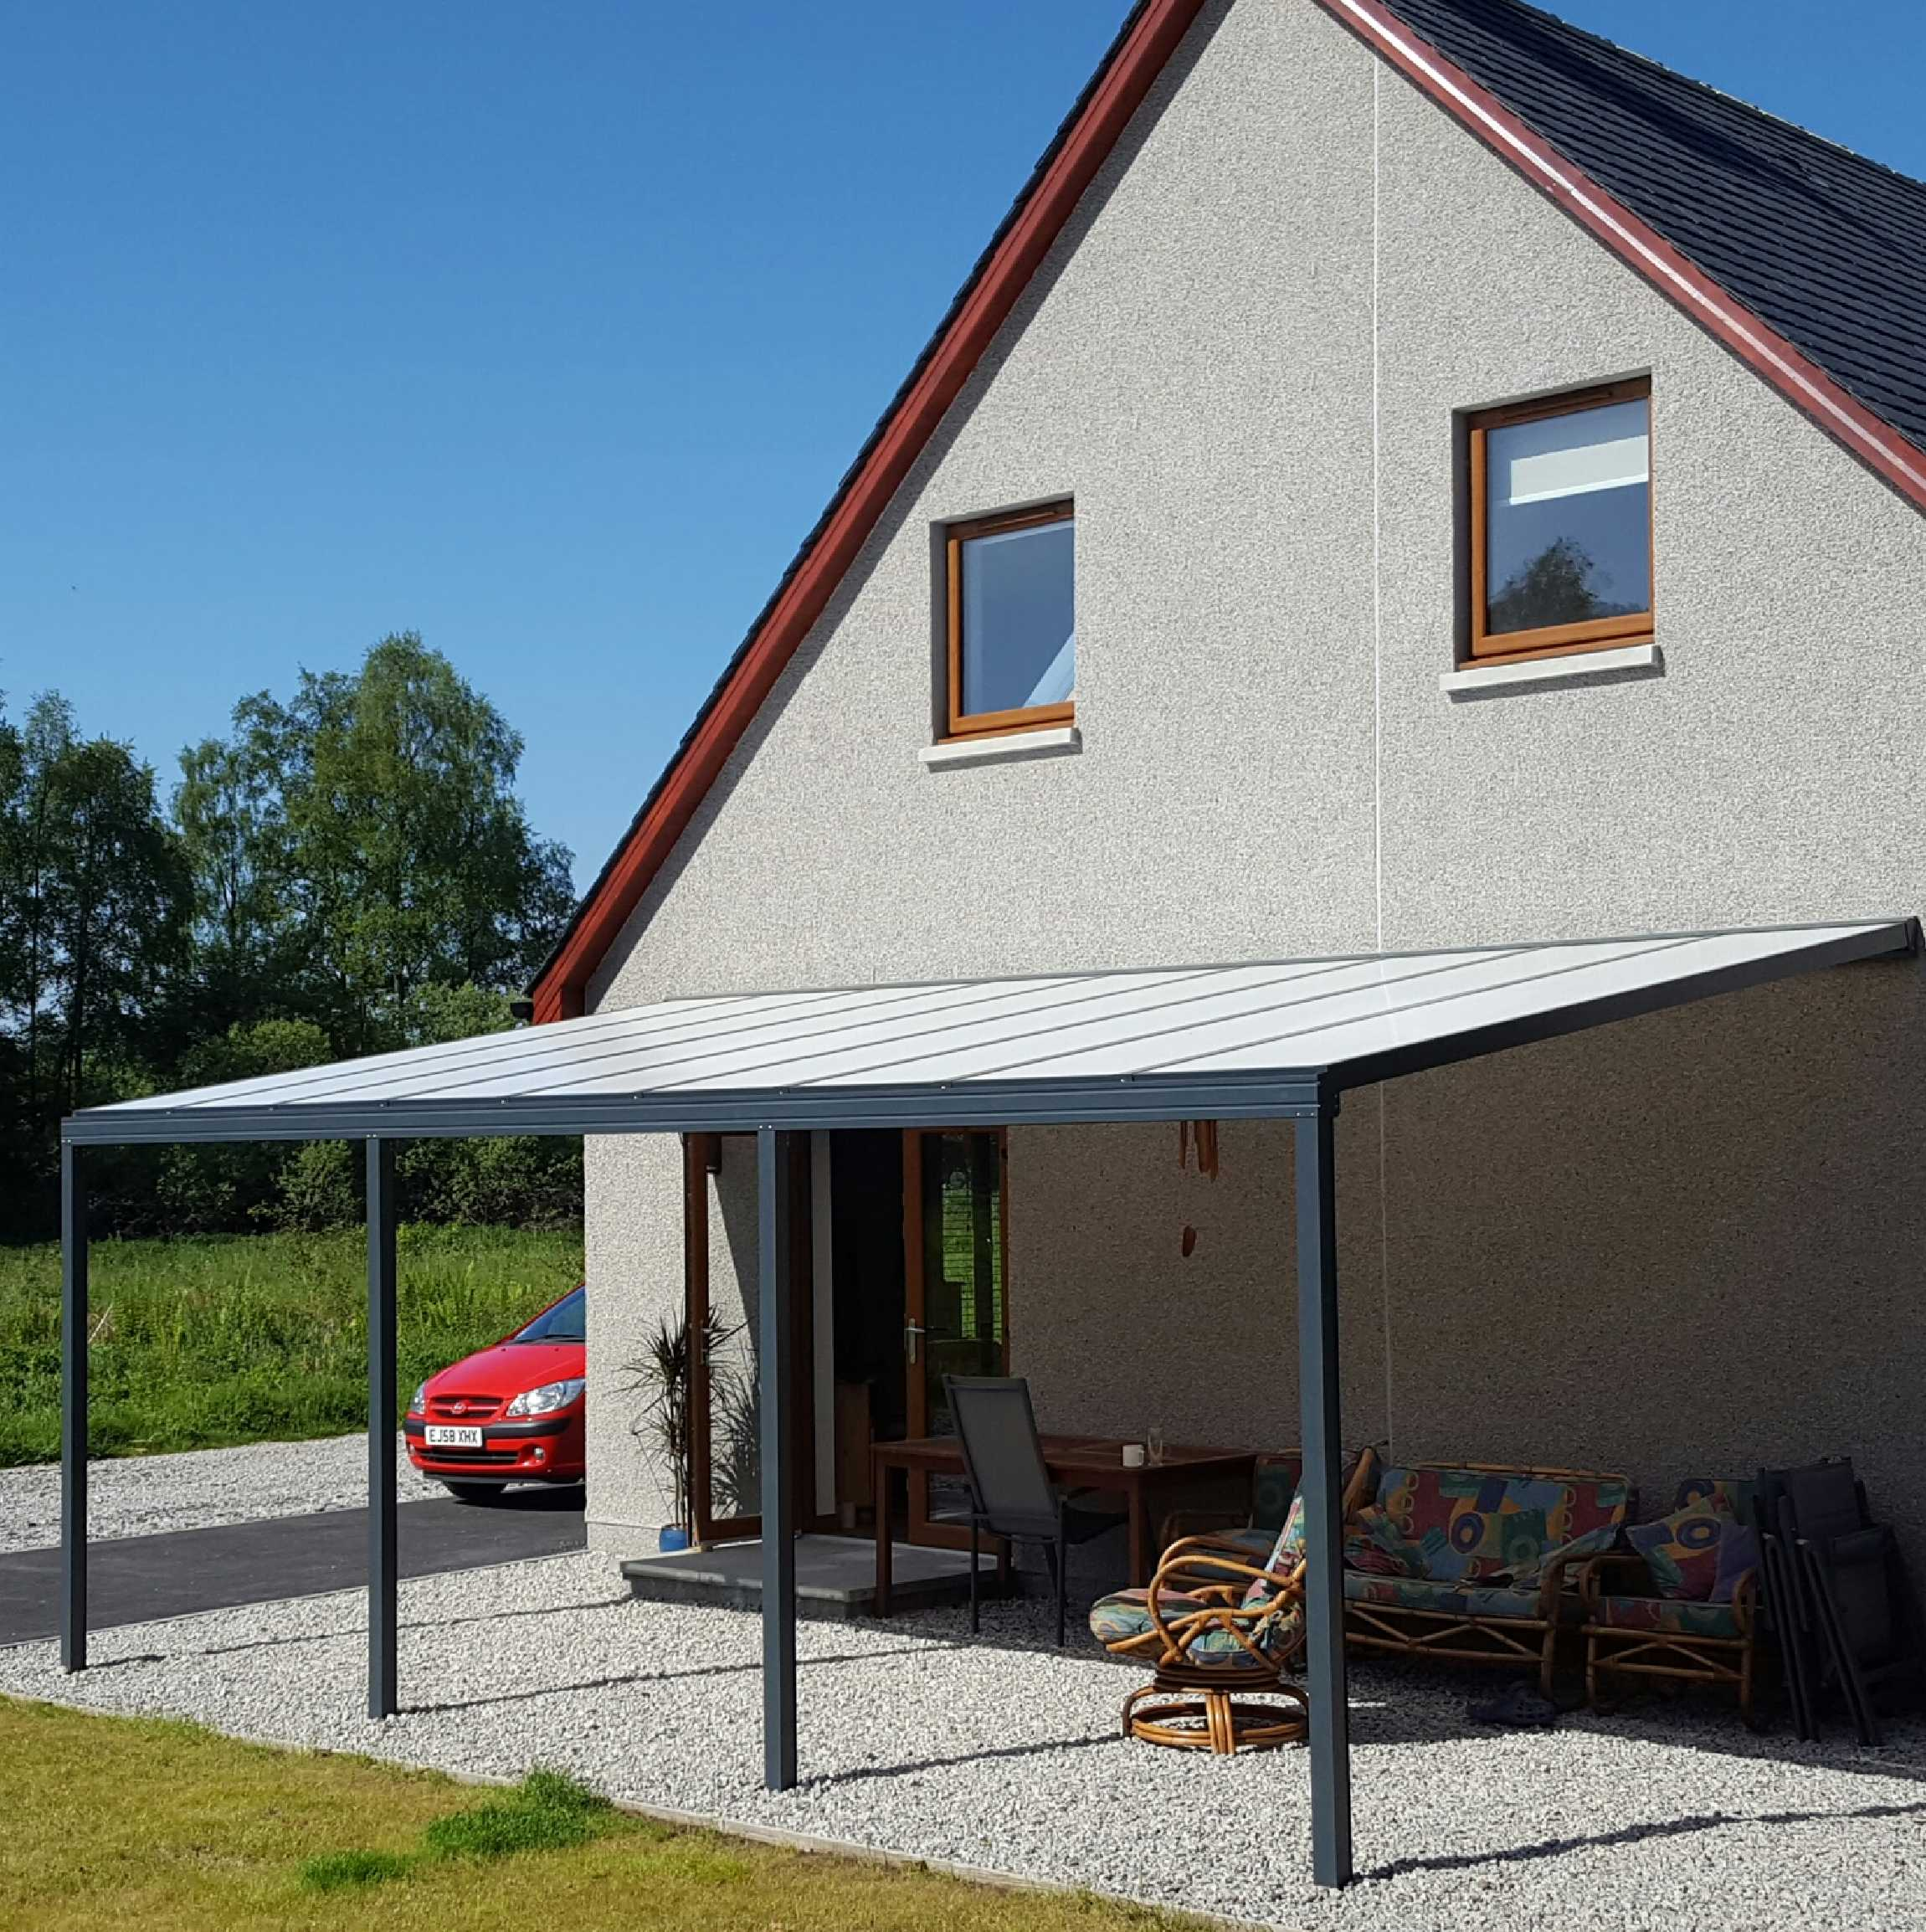 Great selection of Omega Smart Lean-To Canopy, Anthracite Grey, 16mm Polycarbonate Glazing - 6.3m (W) x 3.0m (P), (4) Supporting Posts